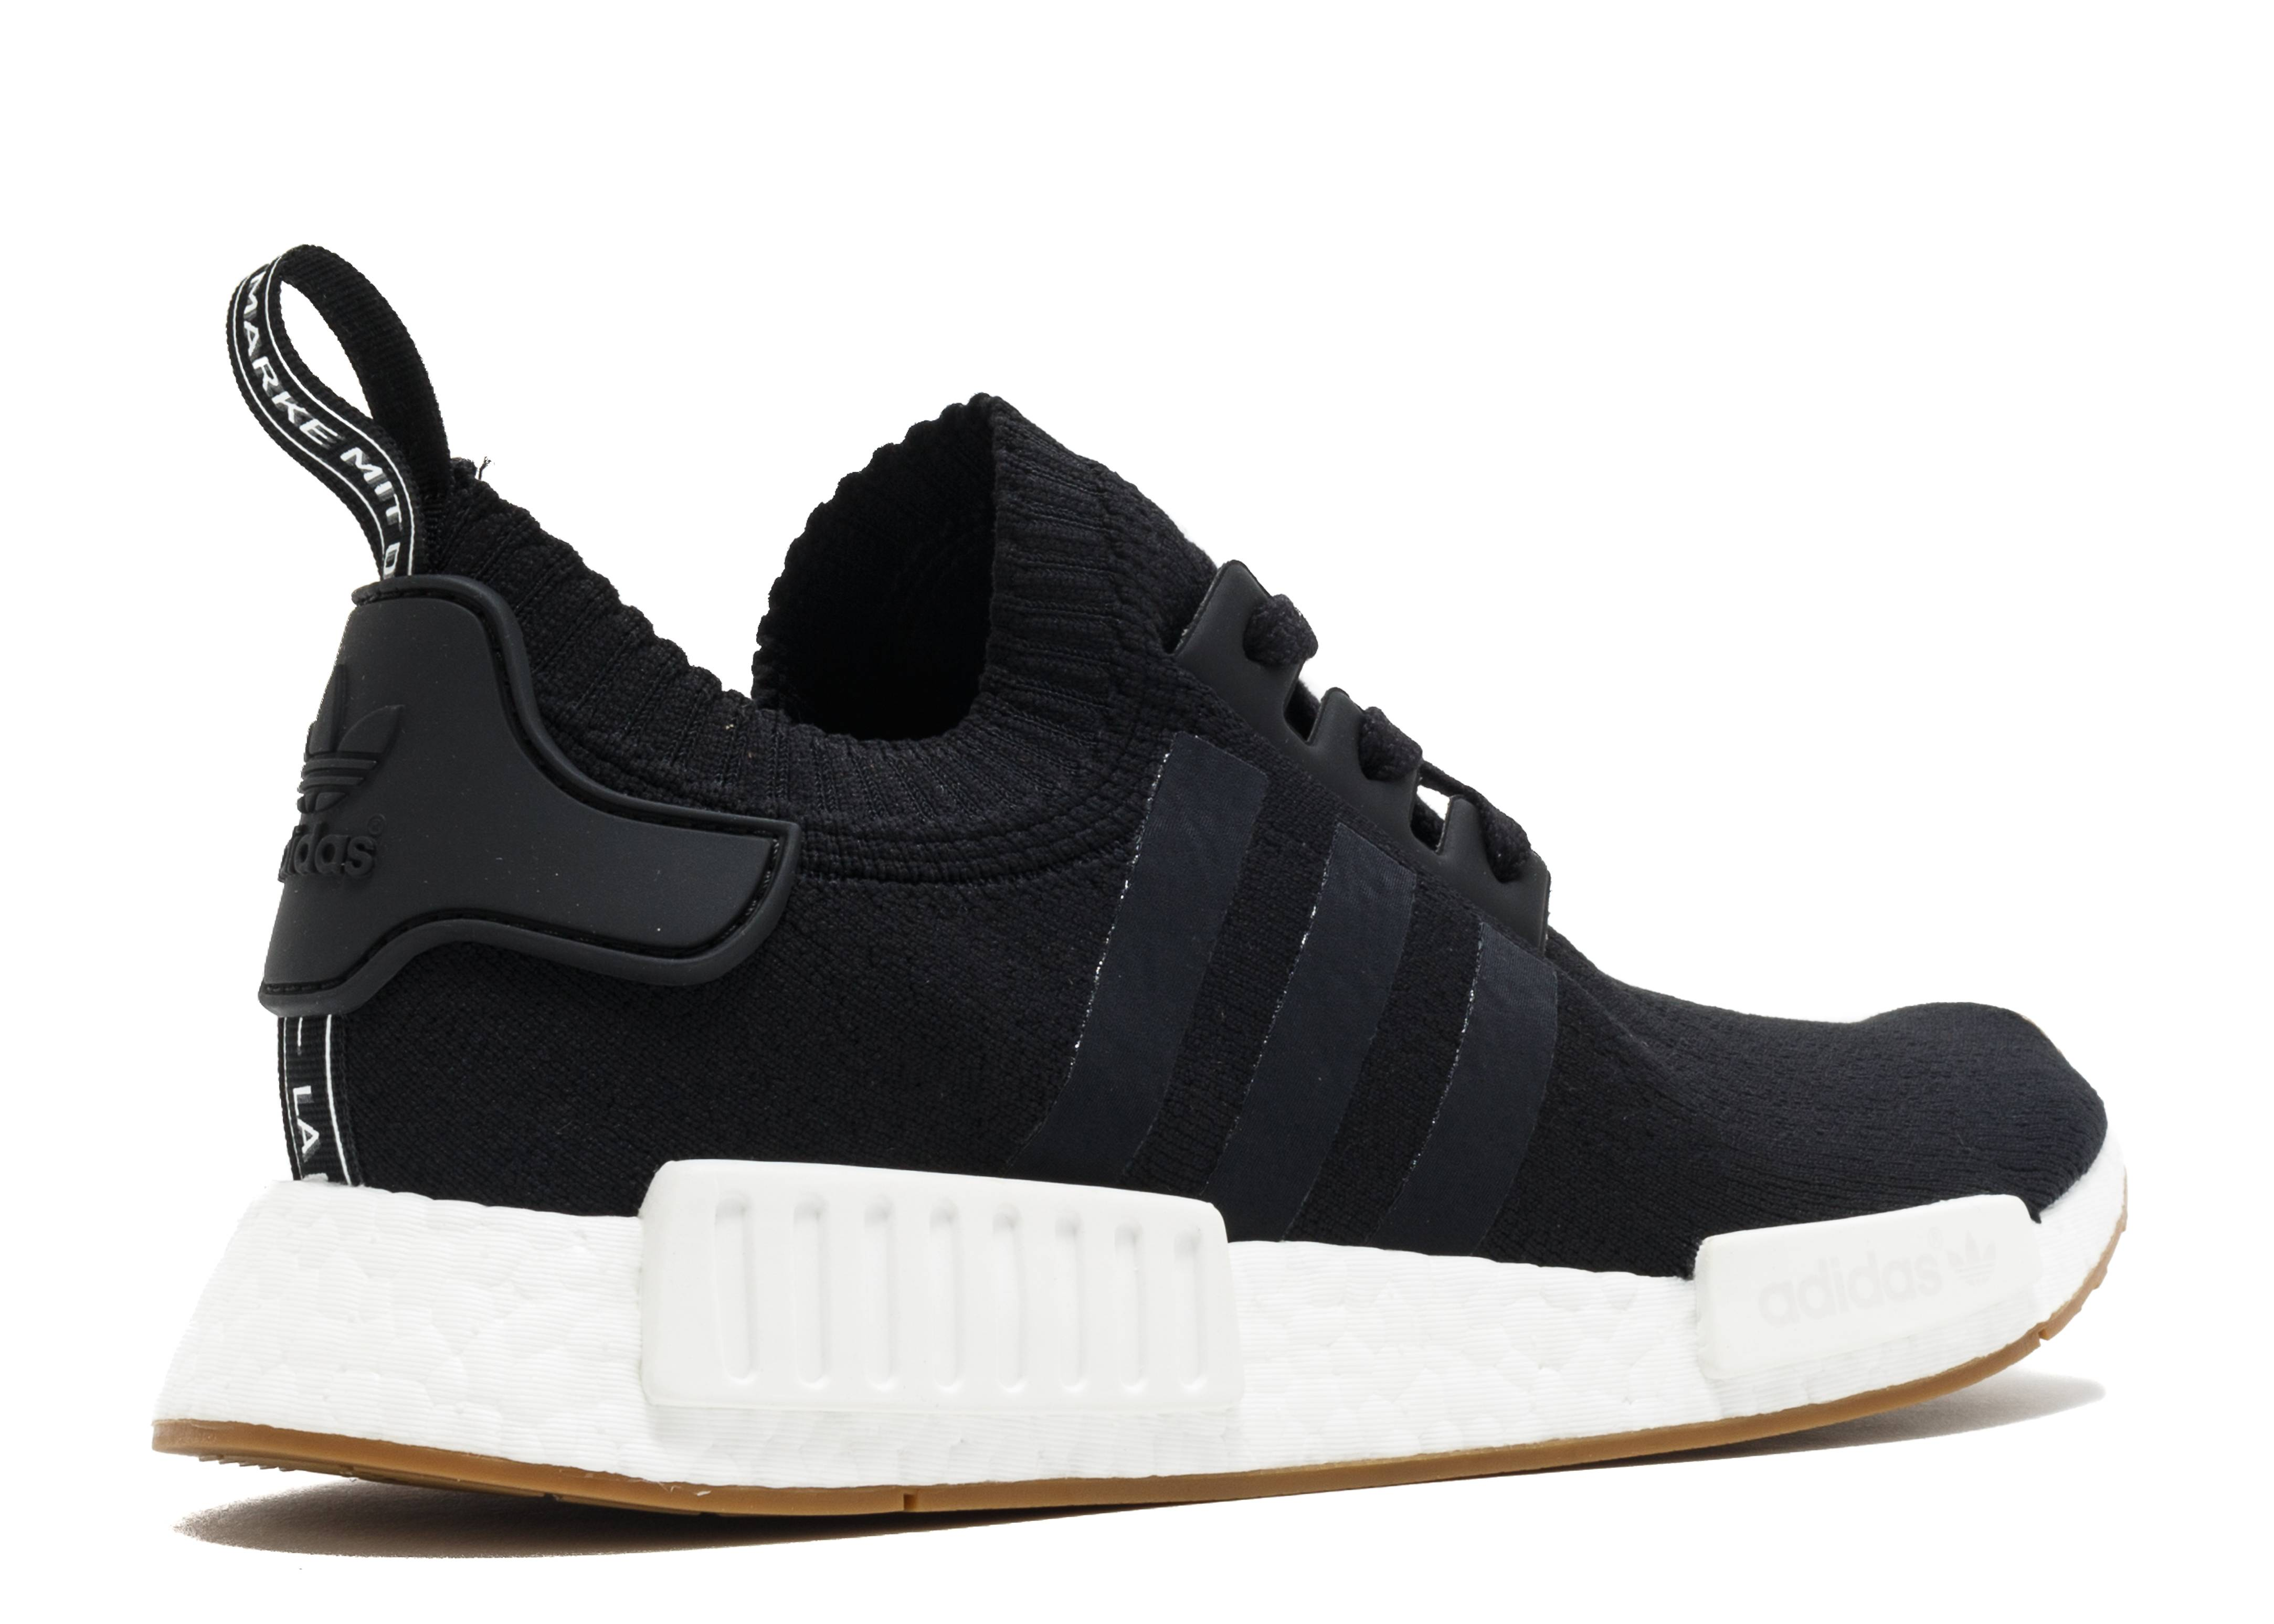 Cheap Adidas's NMD R1 Takes the Tonal Route, This Time in